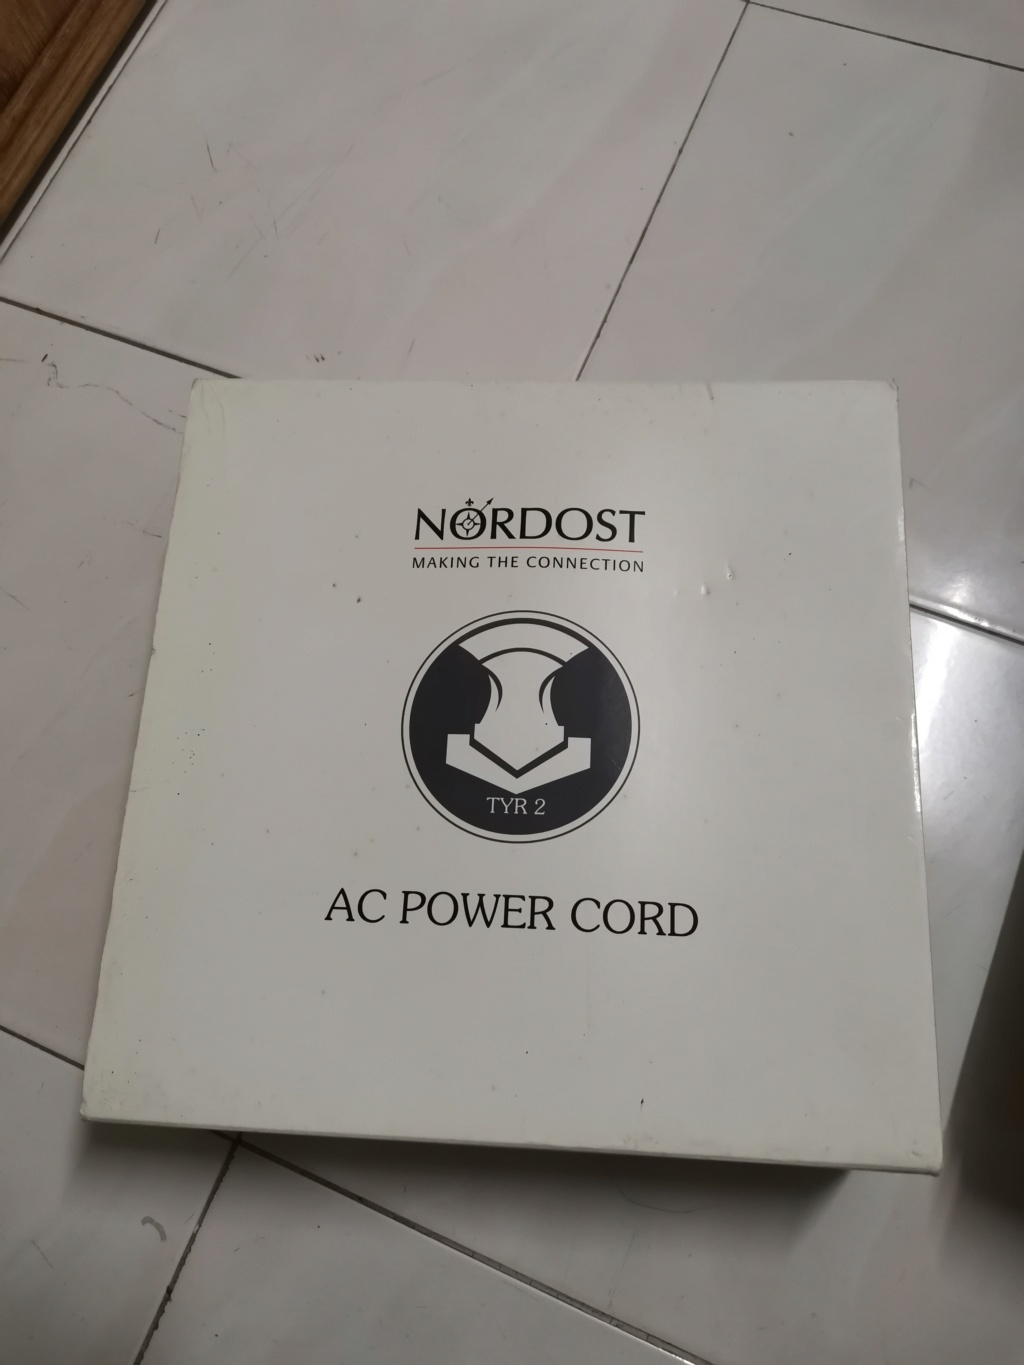 nordost tyr 2 power cord Img_2267